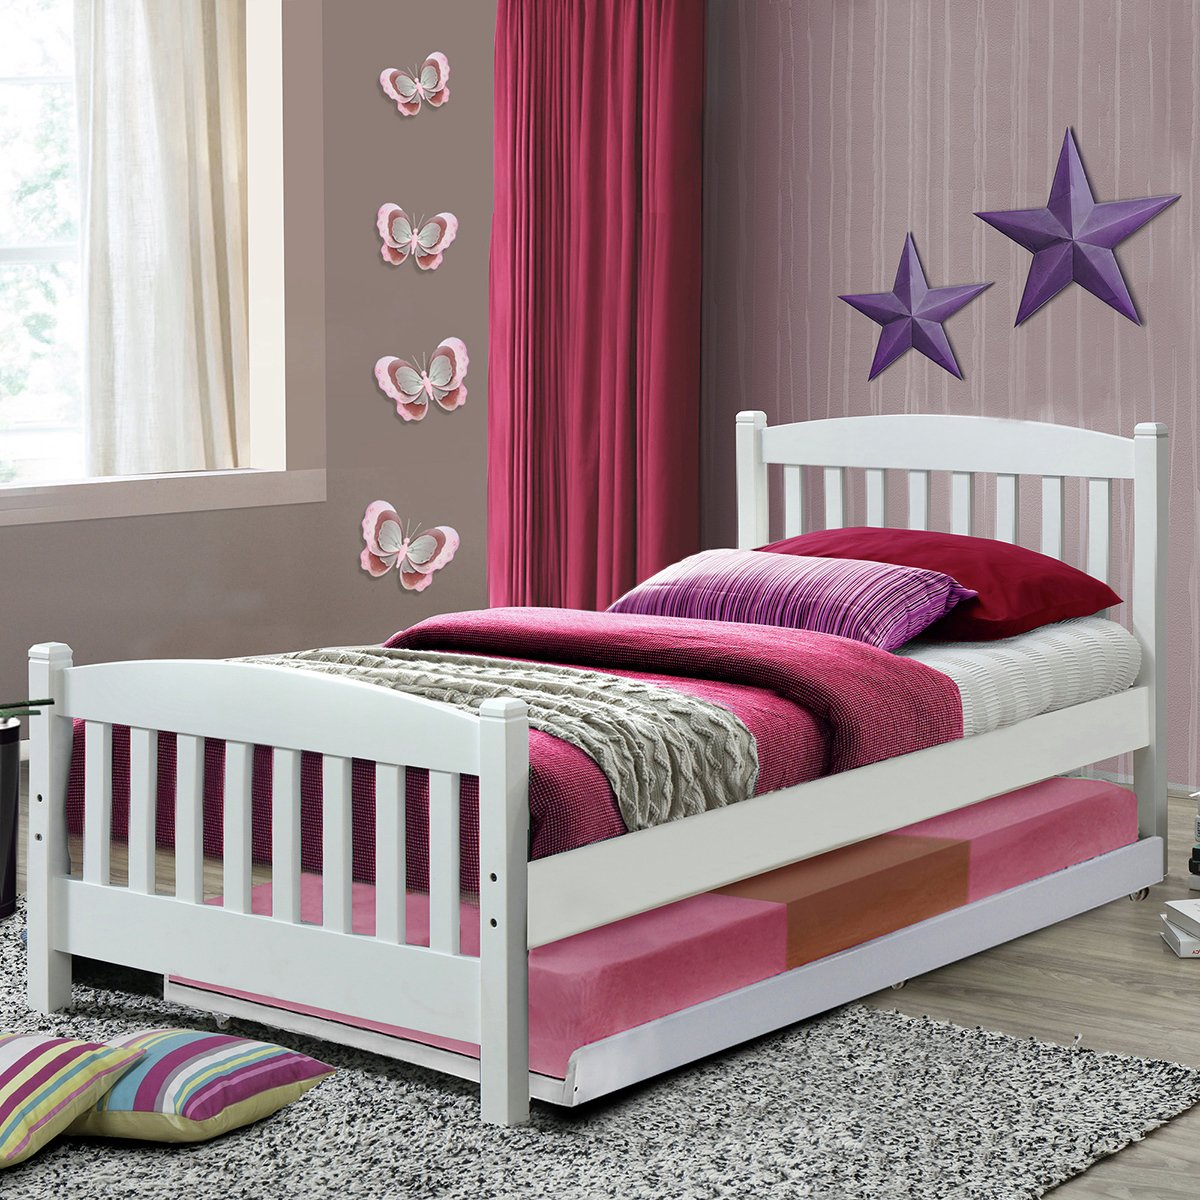 Snowy Single Bed Frame with Trundle